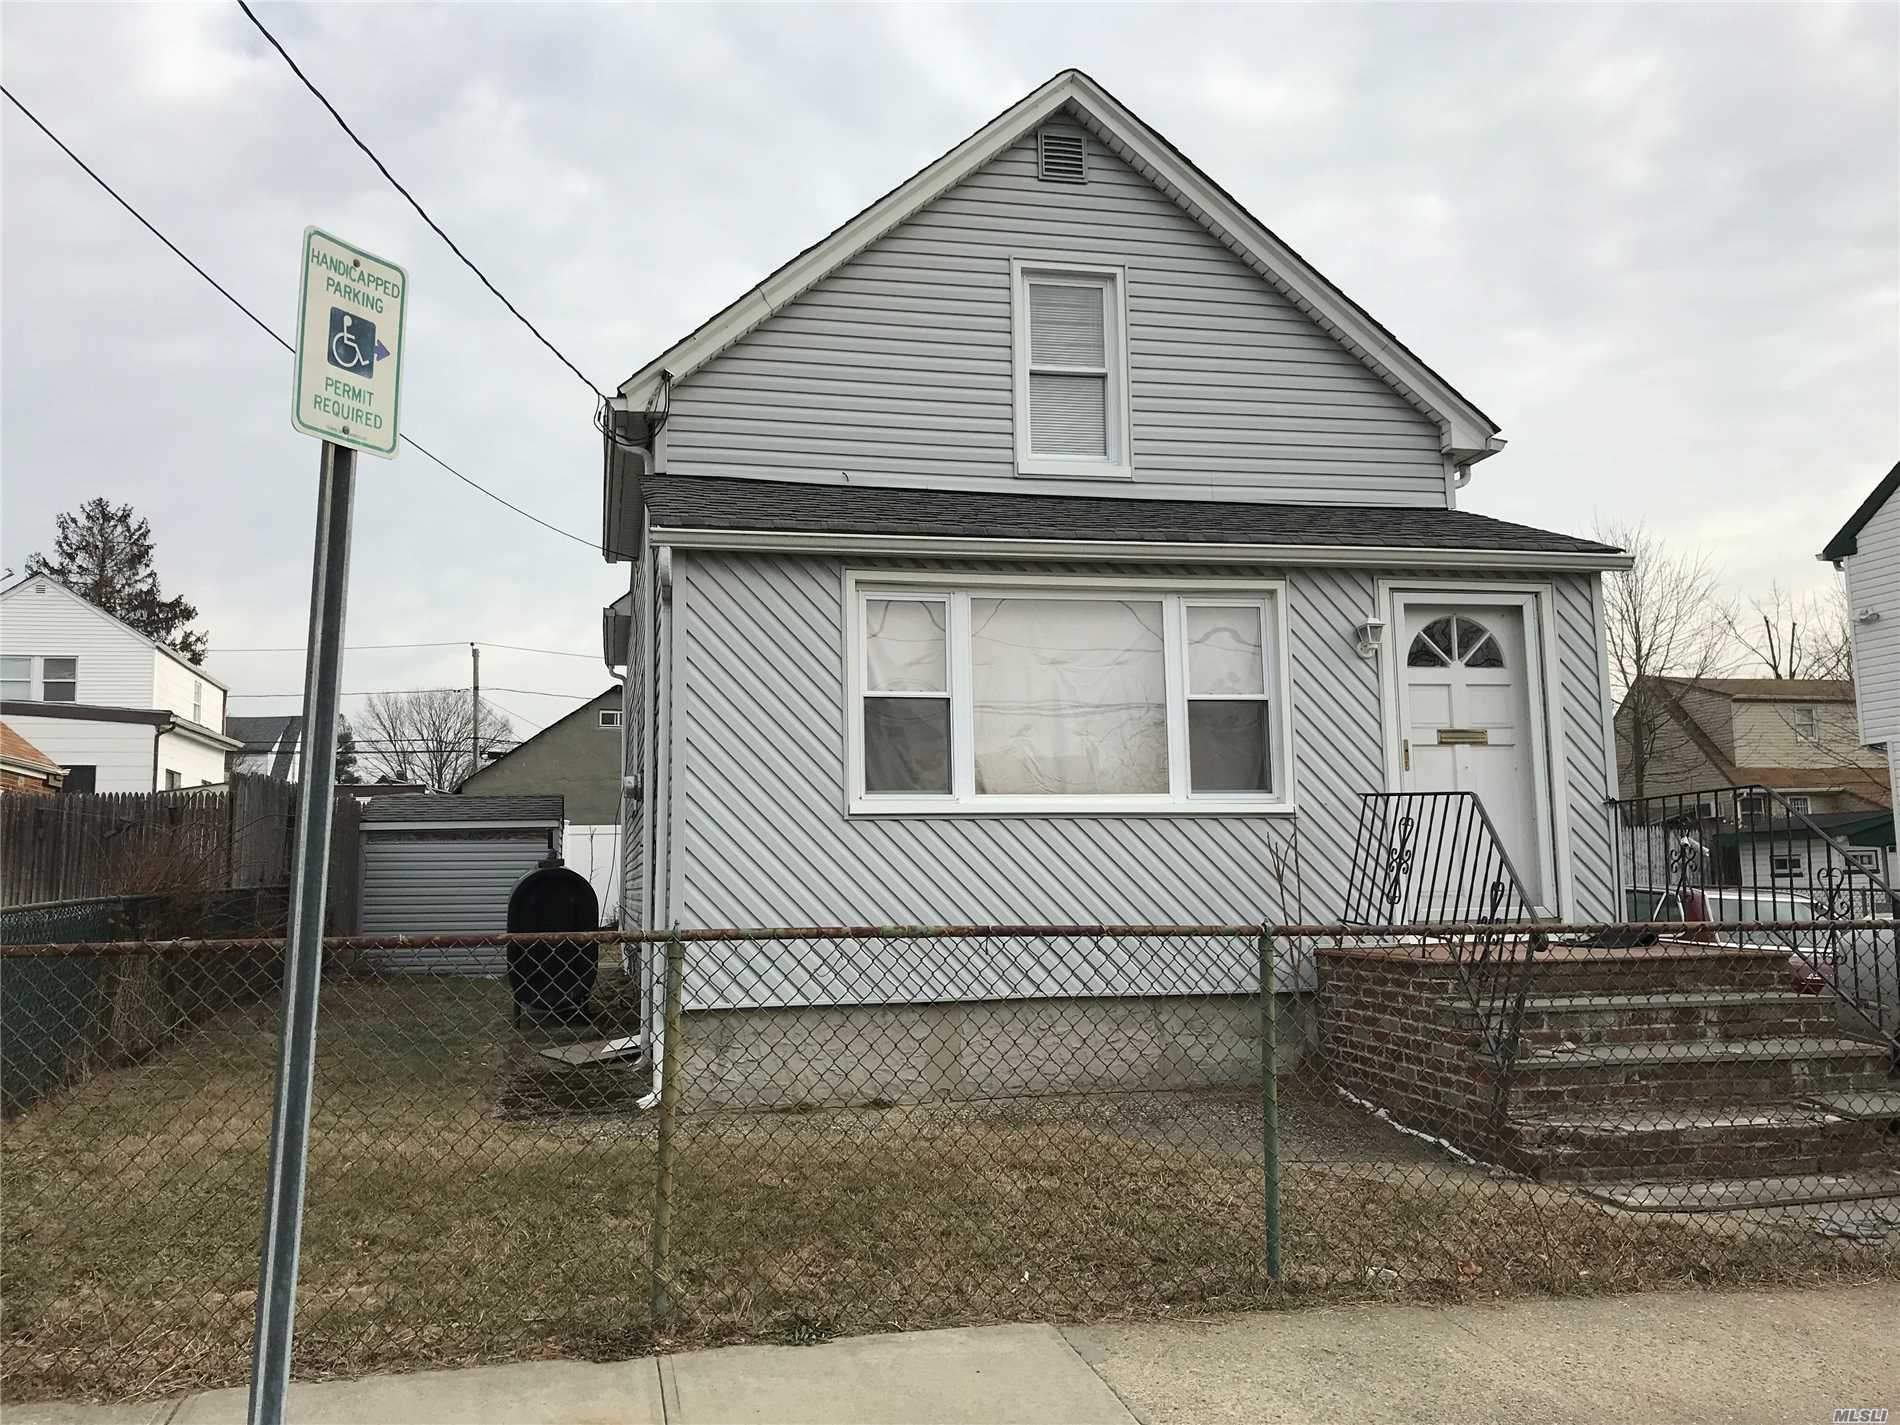 Home In Poor Condition.No Financing! Cash Deals Only!! Short Sale Subject To 3rd Party Approval